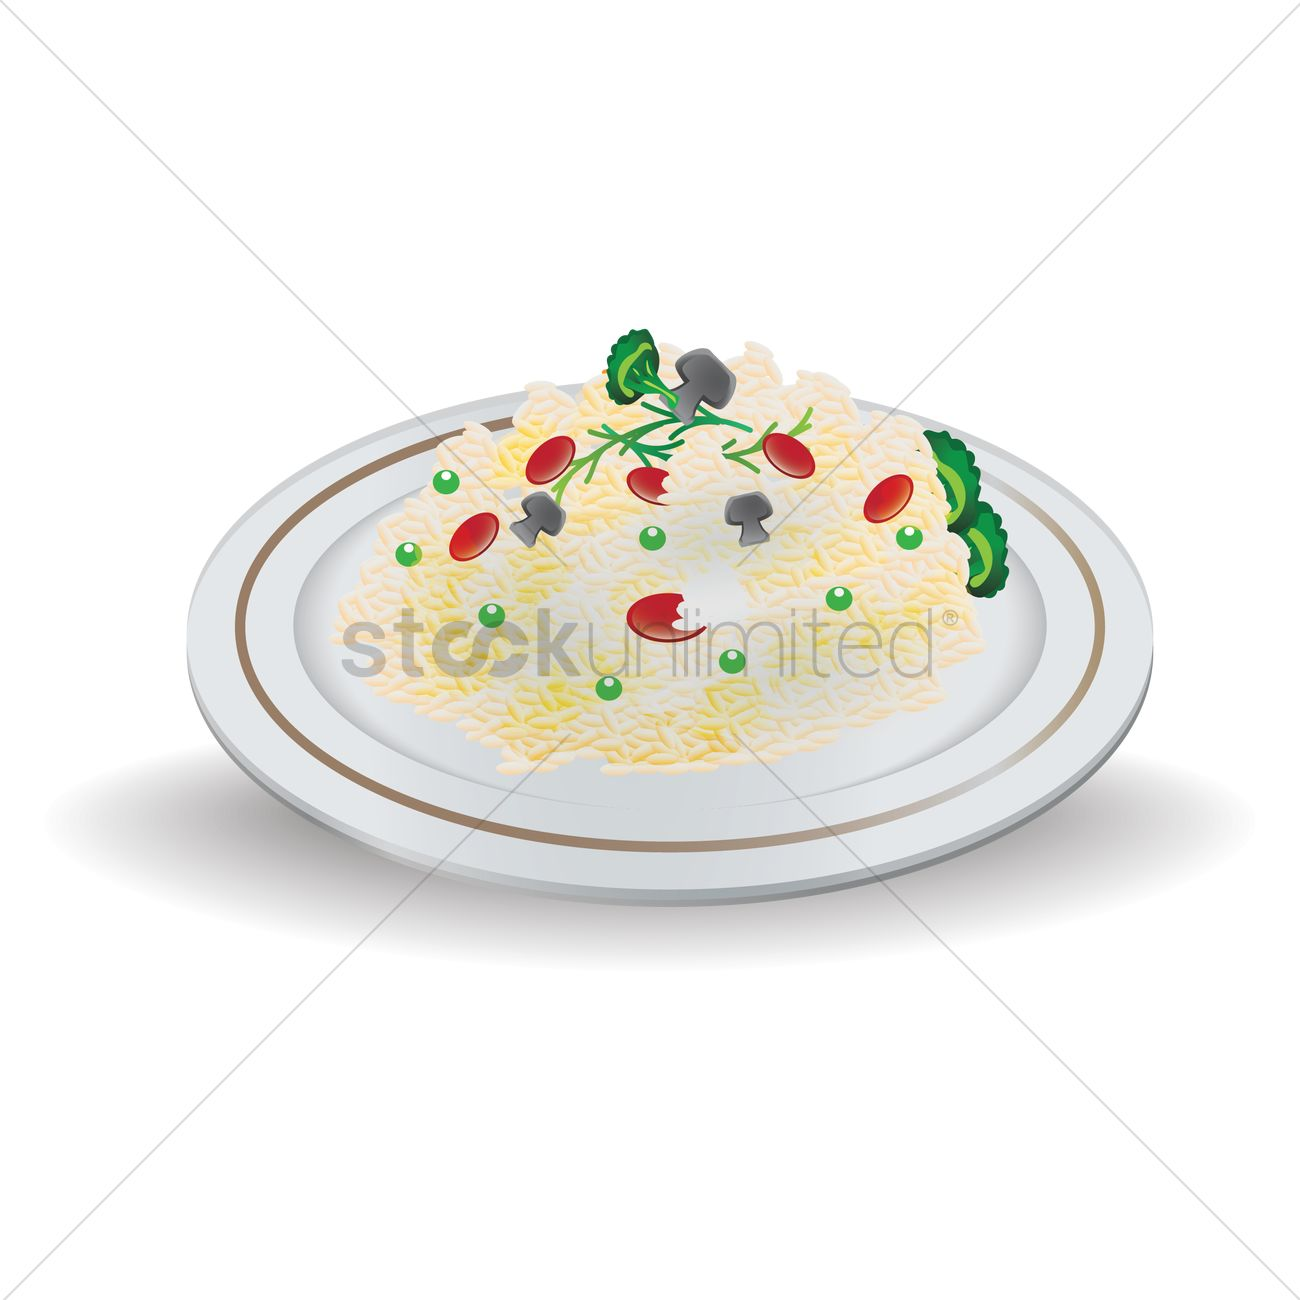 Risotto on a plate Vector Image.